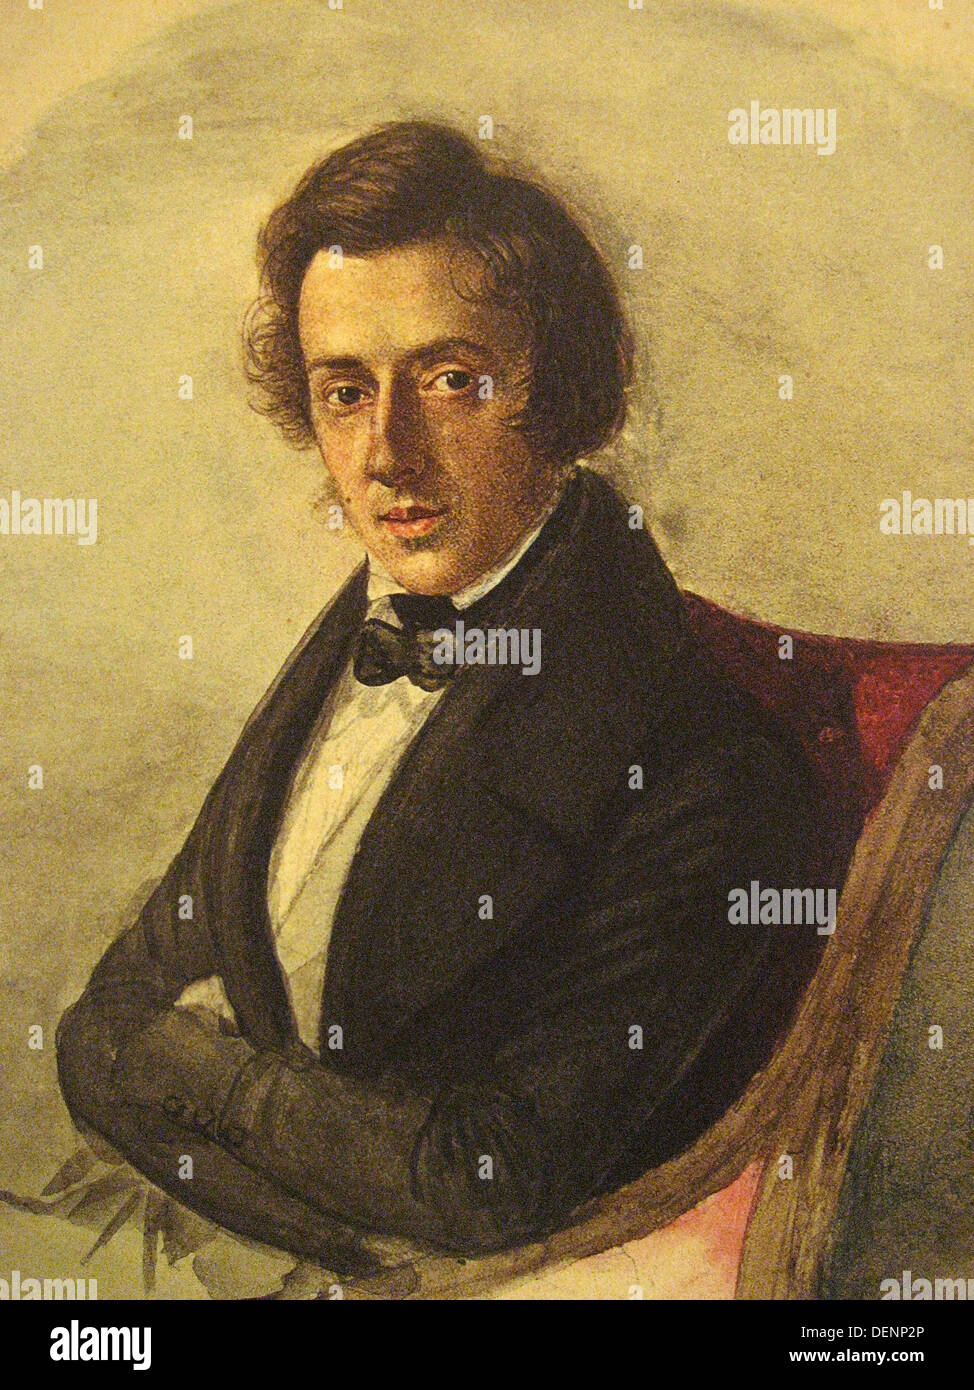 Frederic Chopin, Polish composer Frederic Chopin - Stock Image